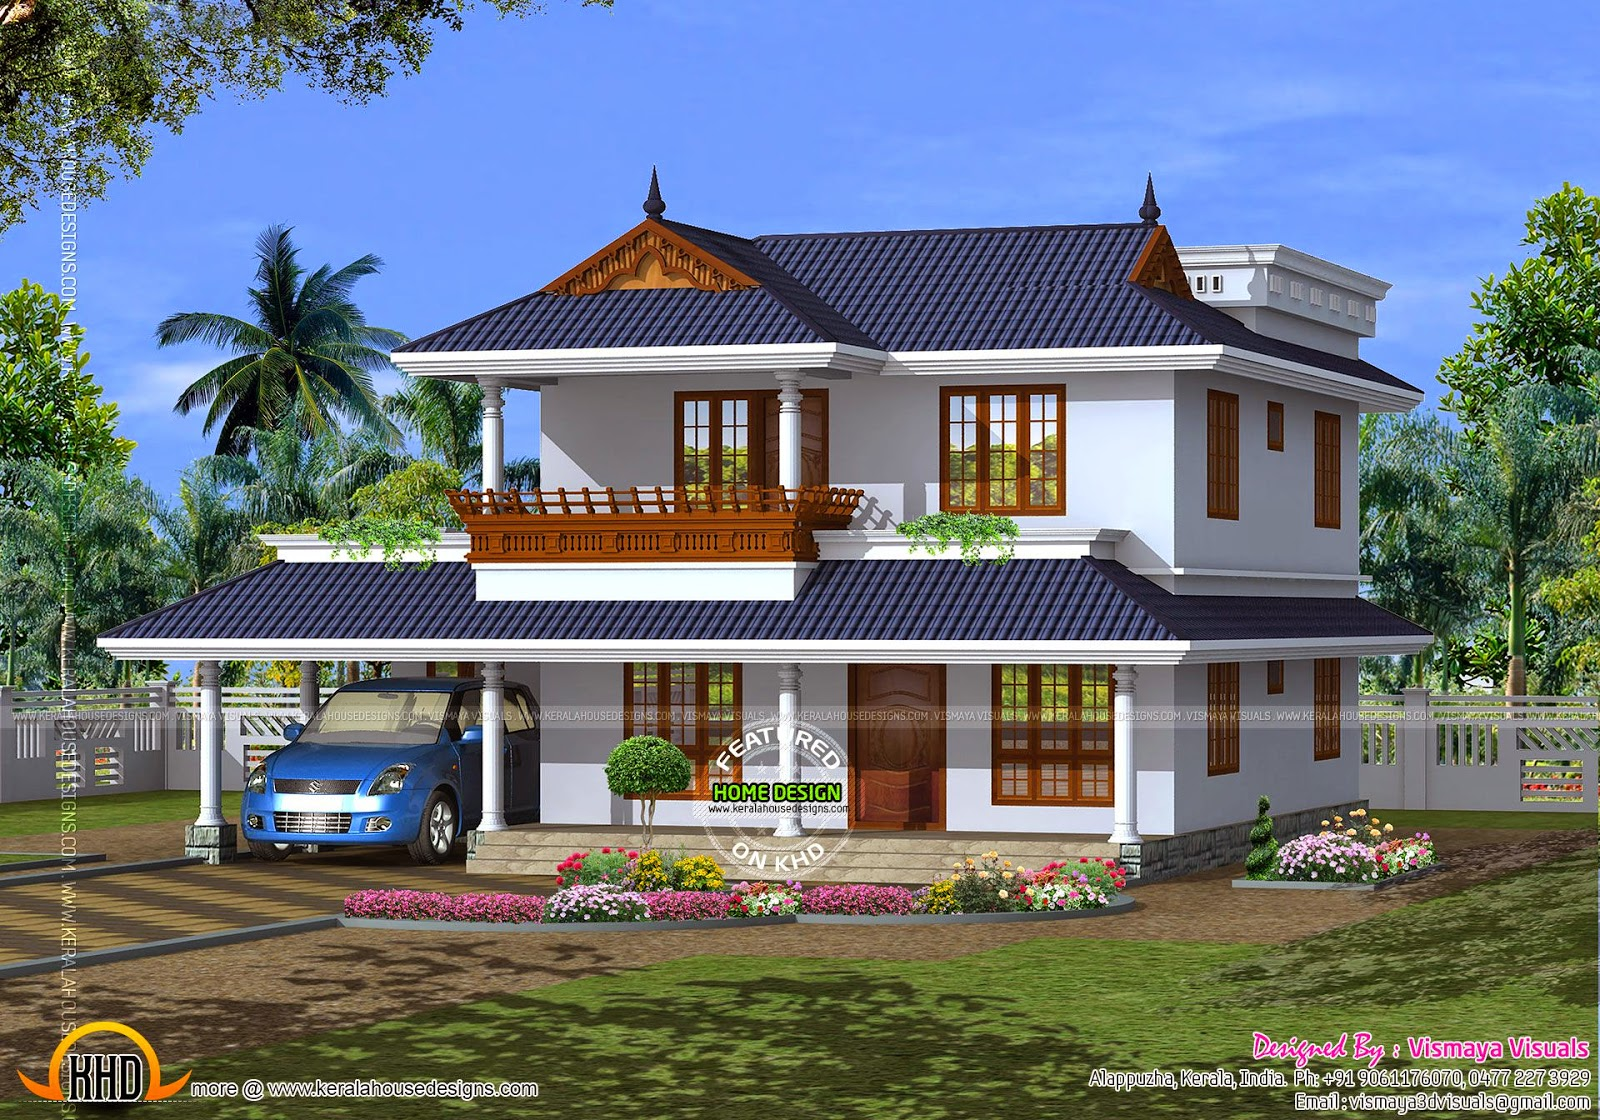 House model kerala kerala home design and floor plans New home models and plans